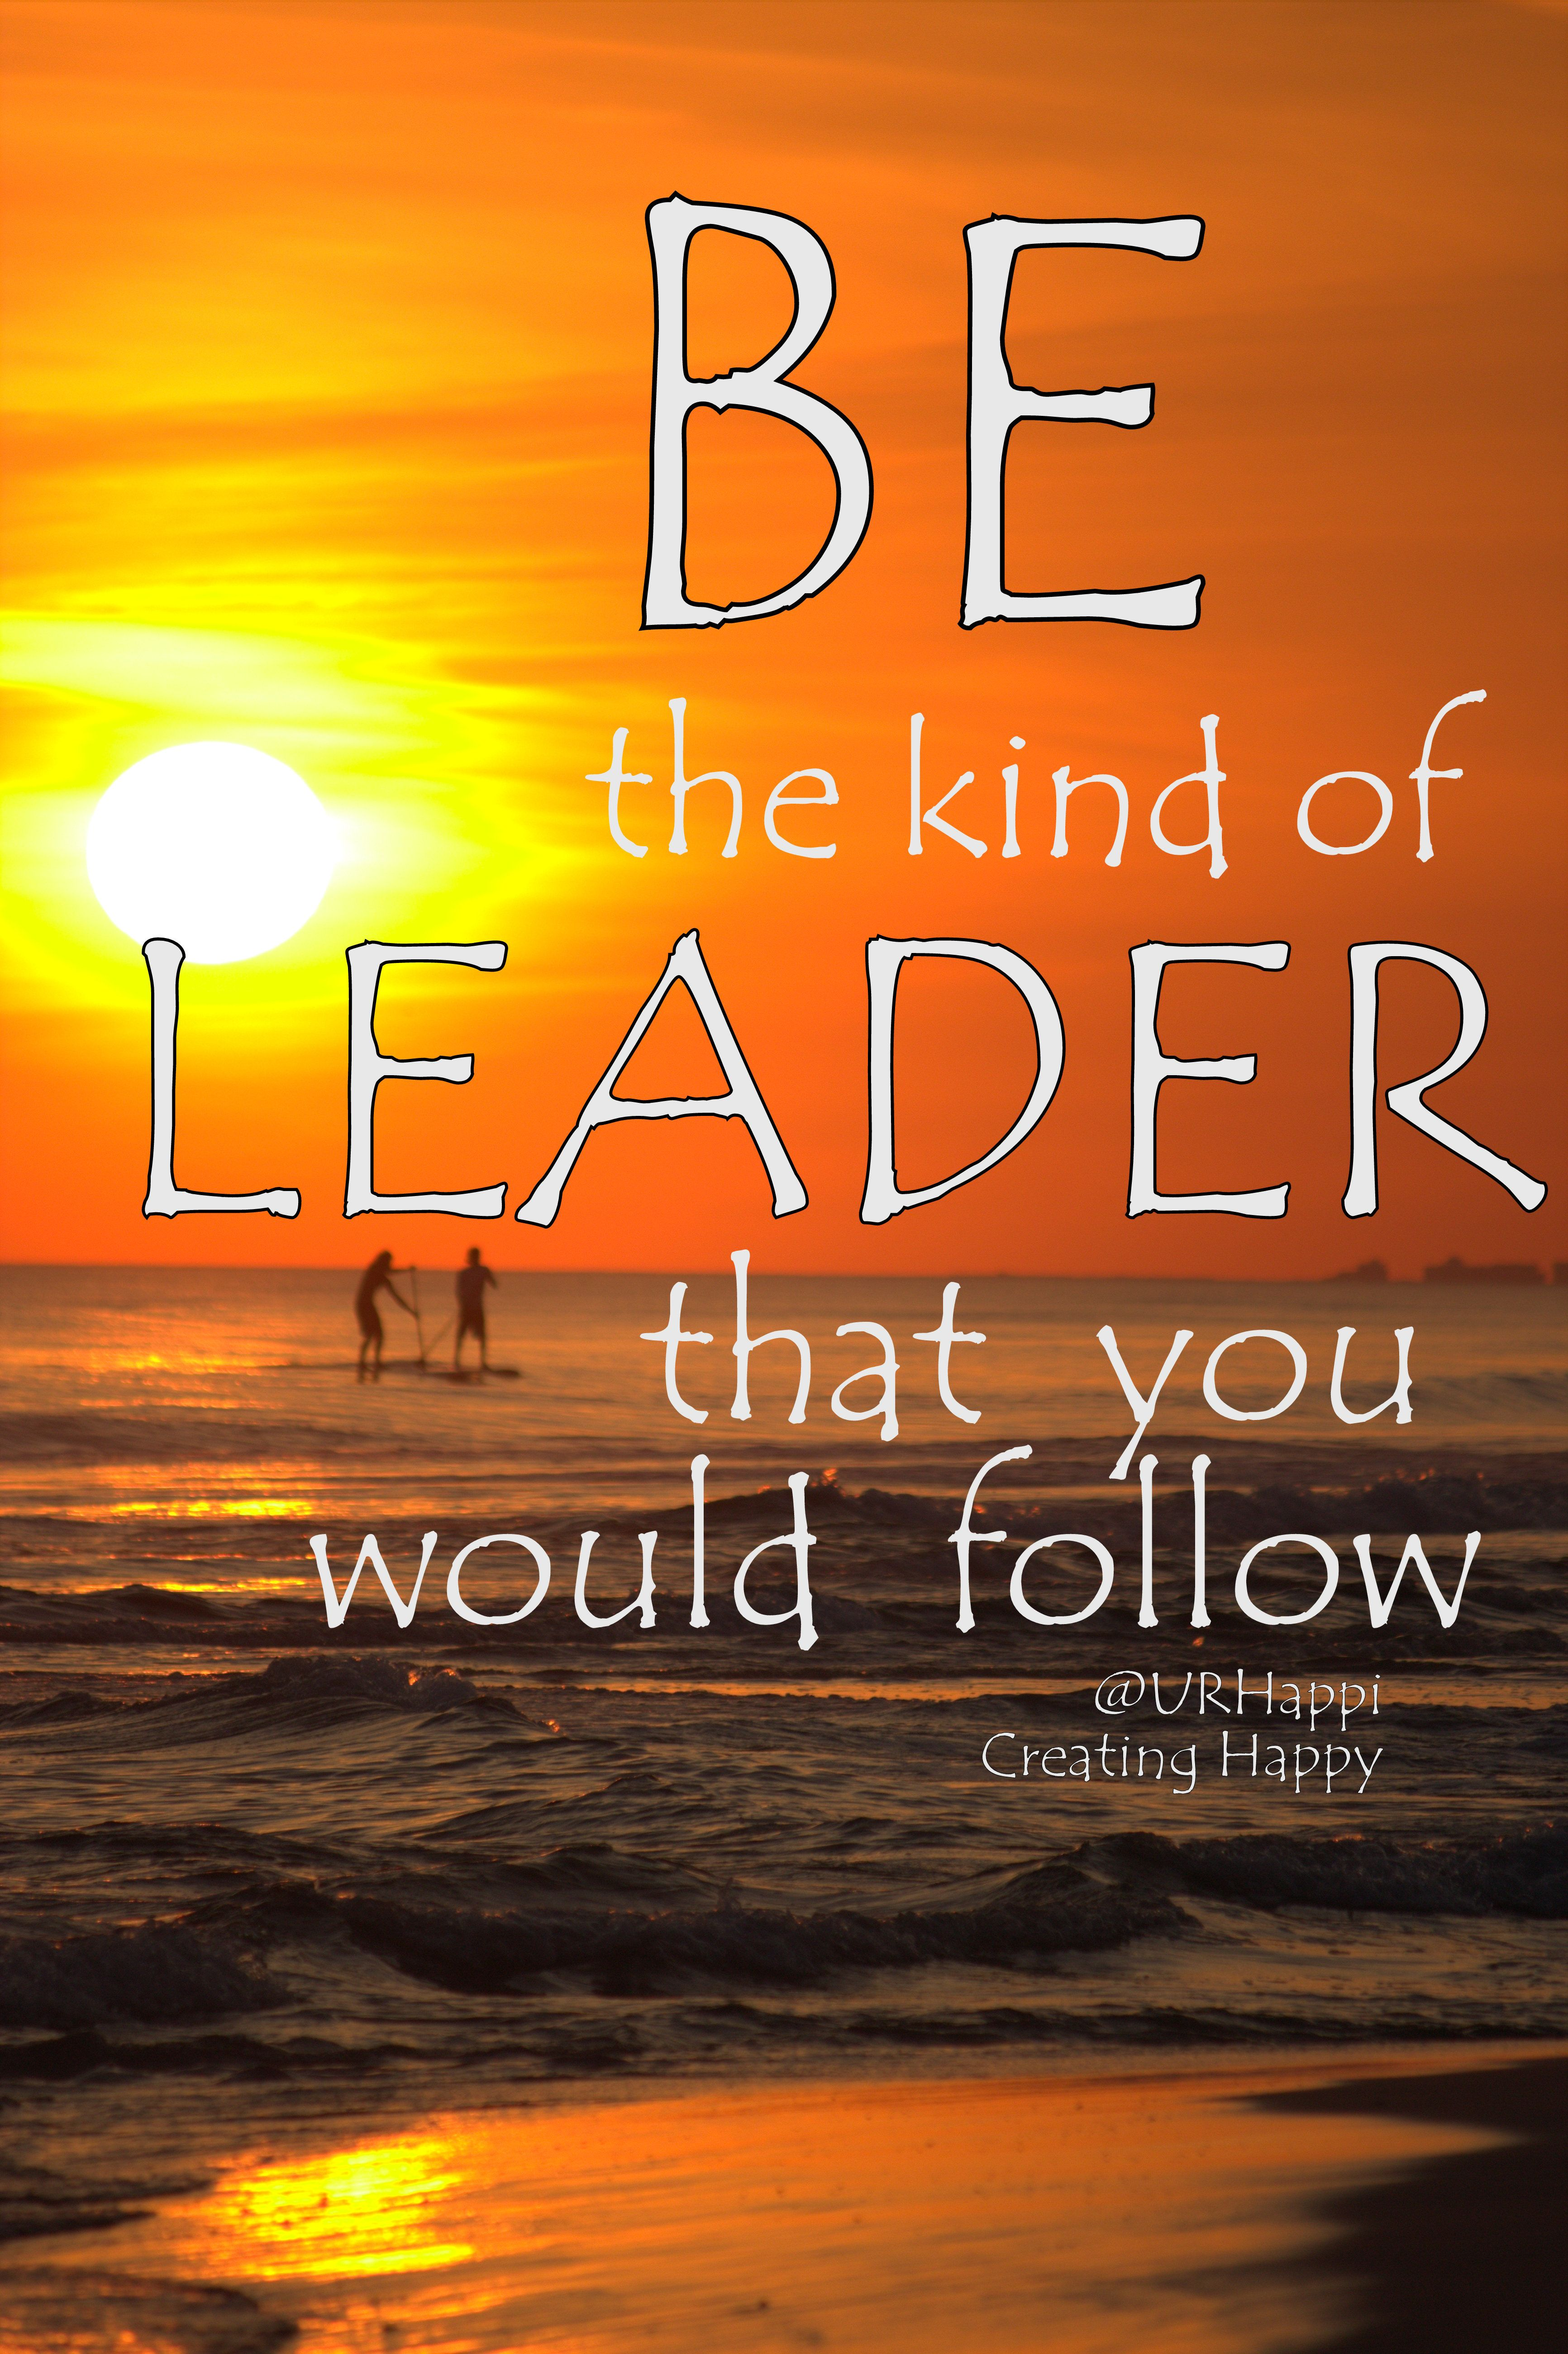 Quotes About Florida Be The Kind Of Leader That You Would Follow #creatinghappy .